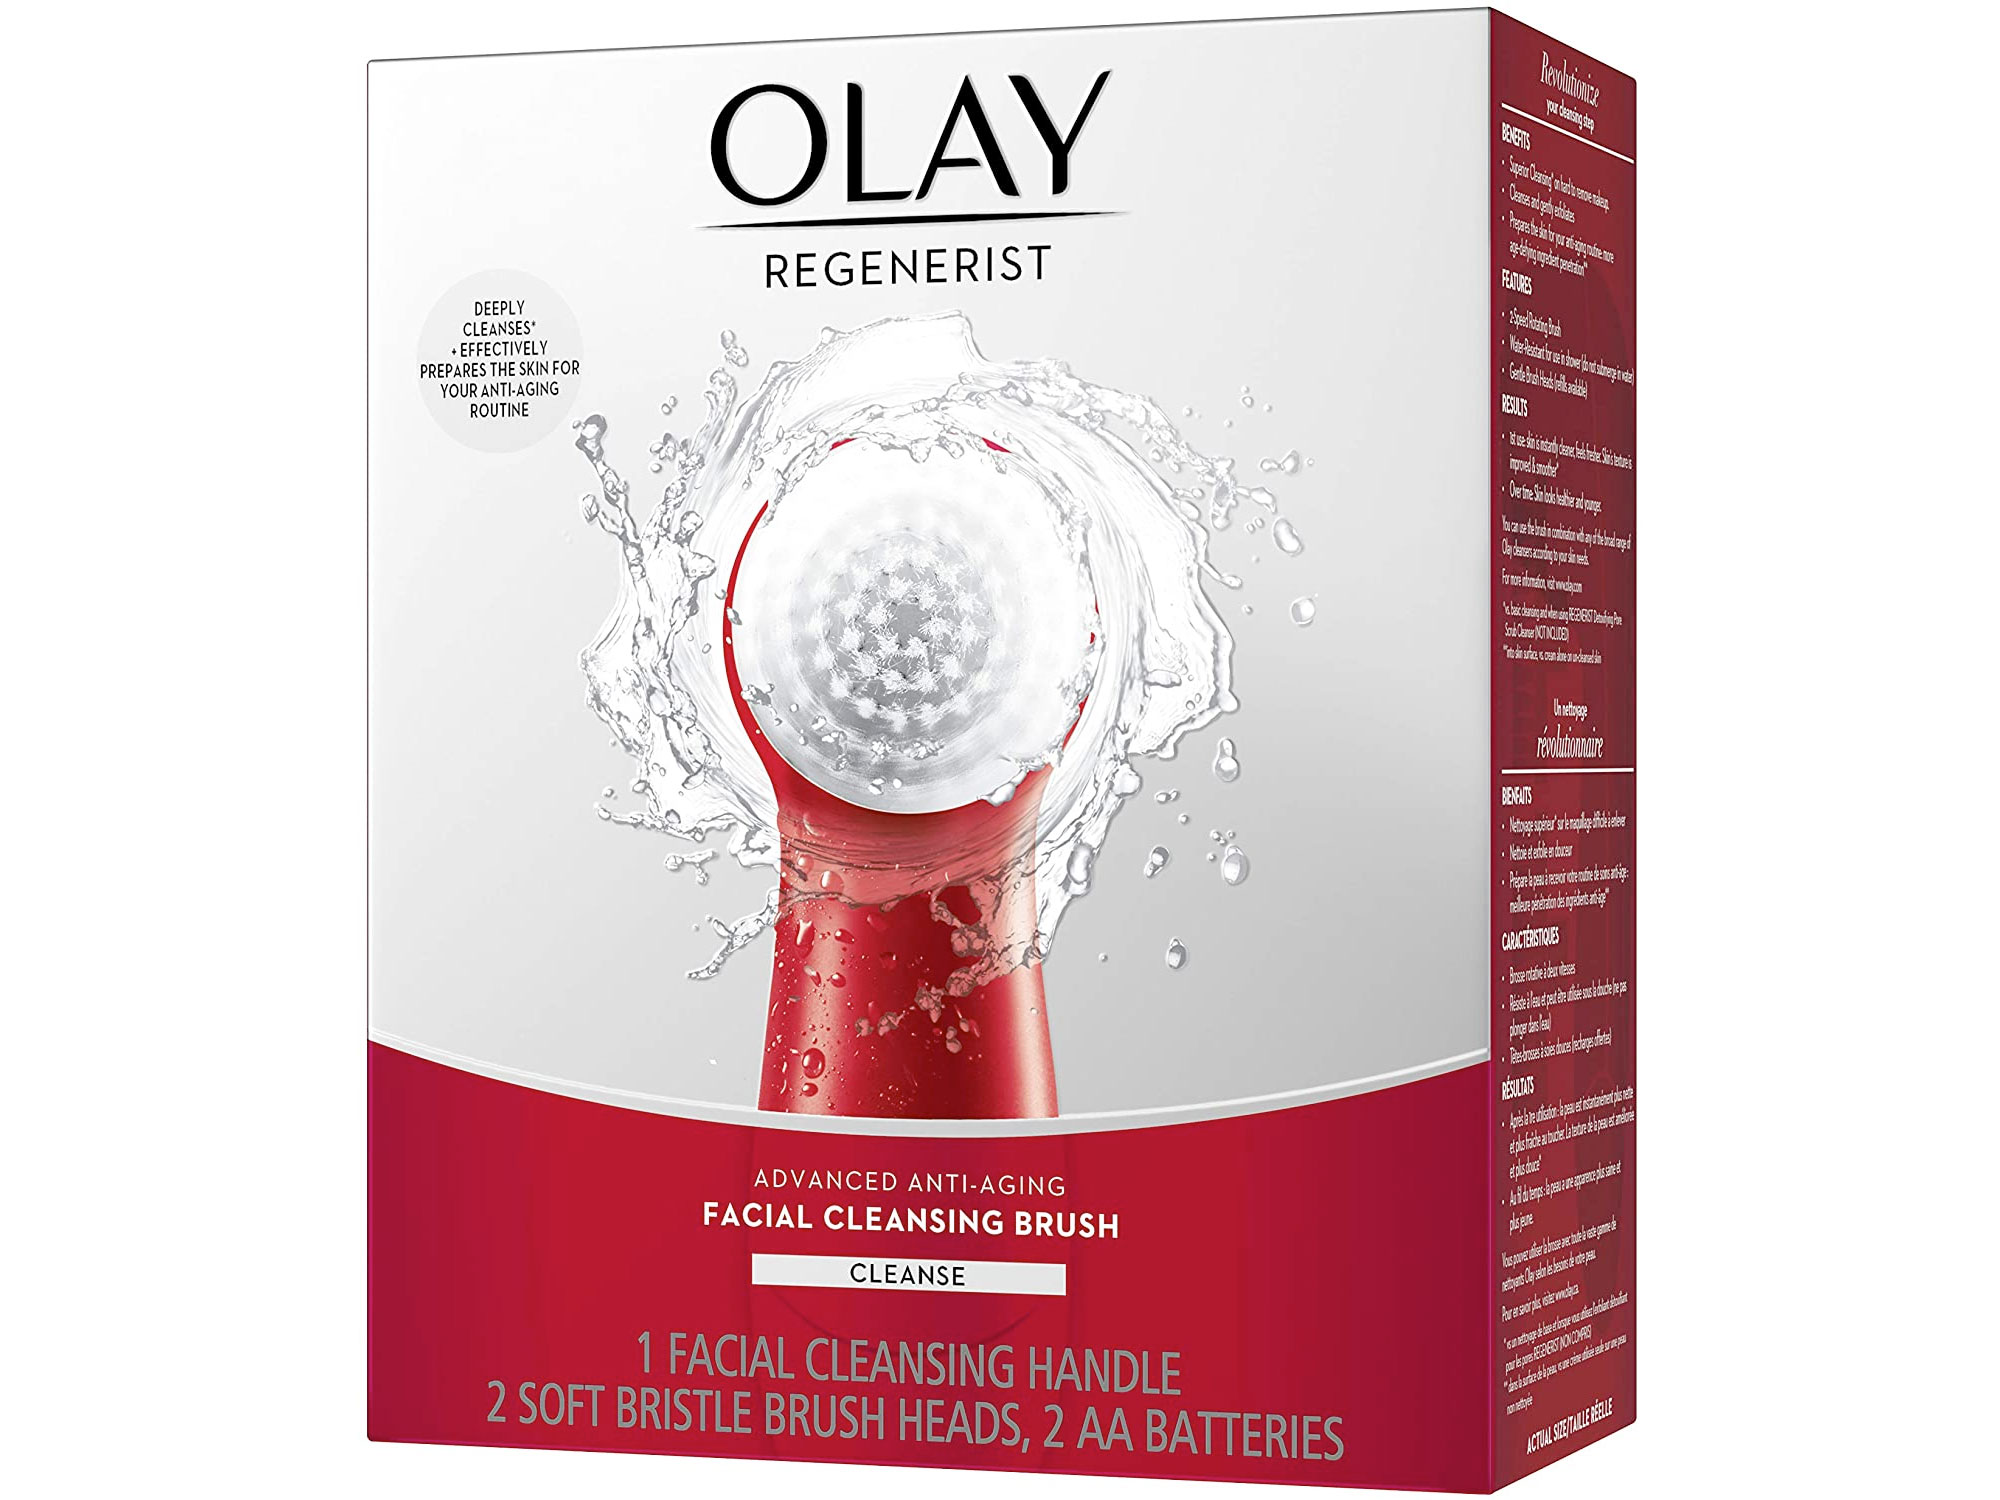 Amazon:Olay Regenerist Face Cleansing Device洗面机只卖$17.50